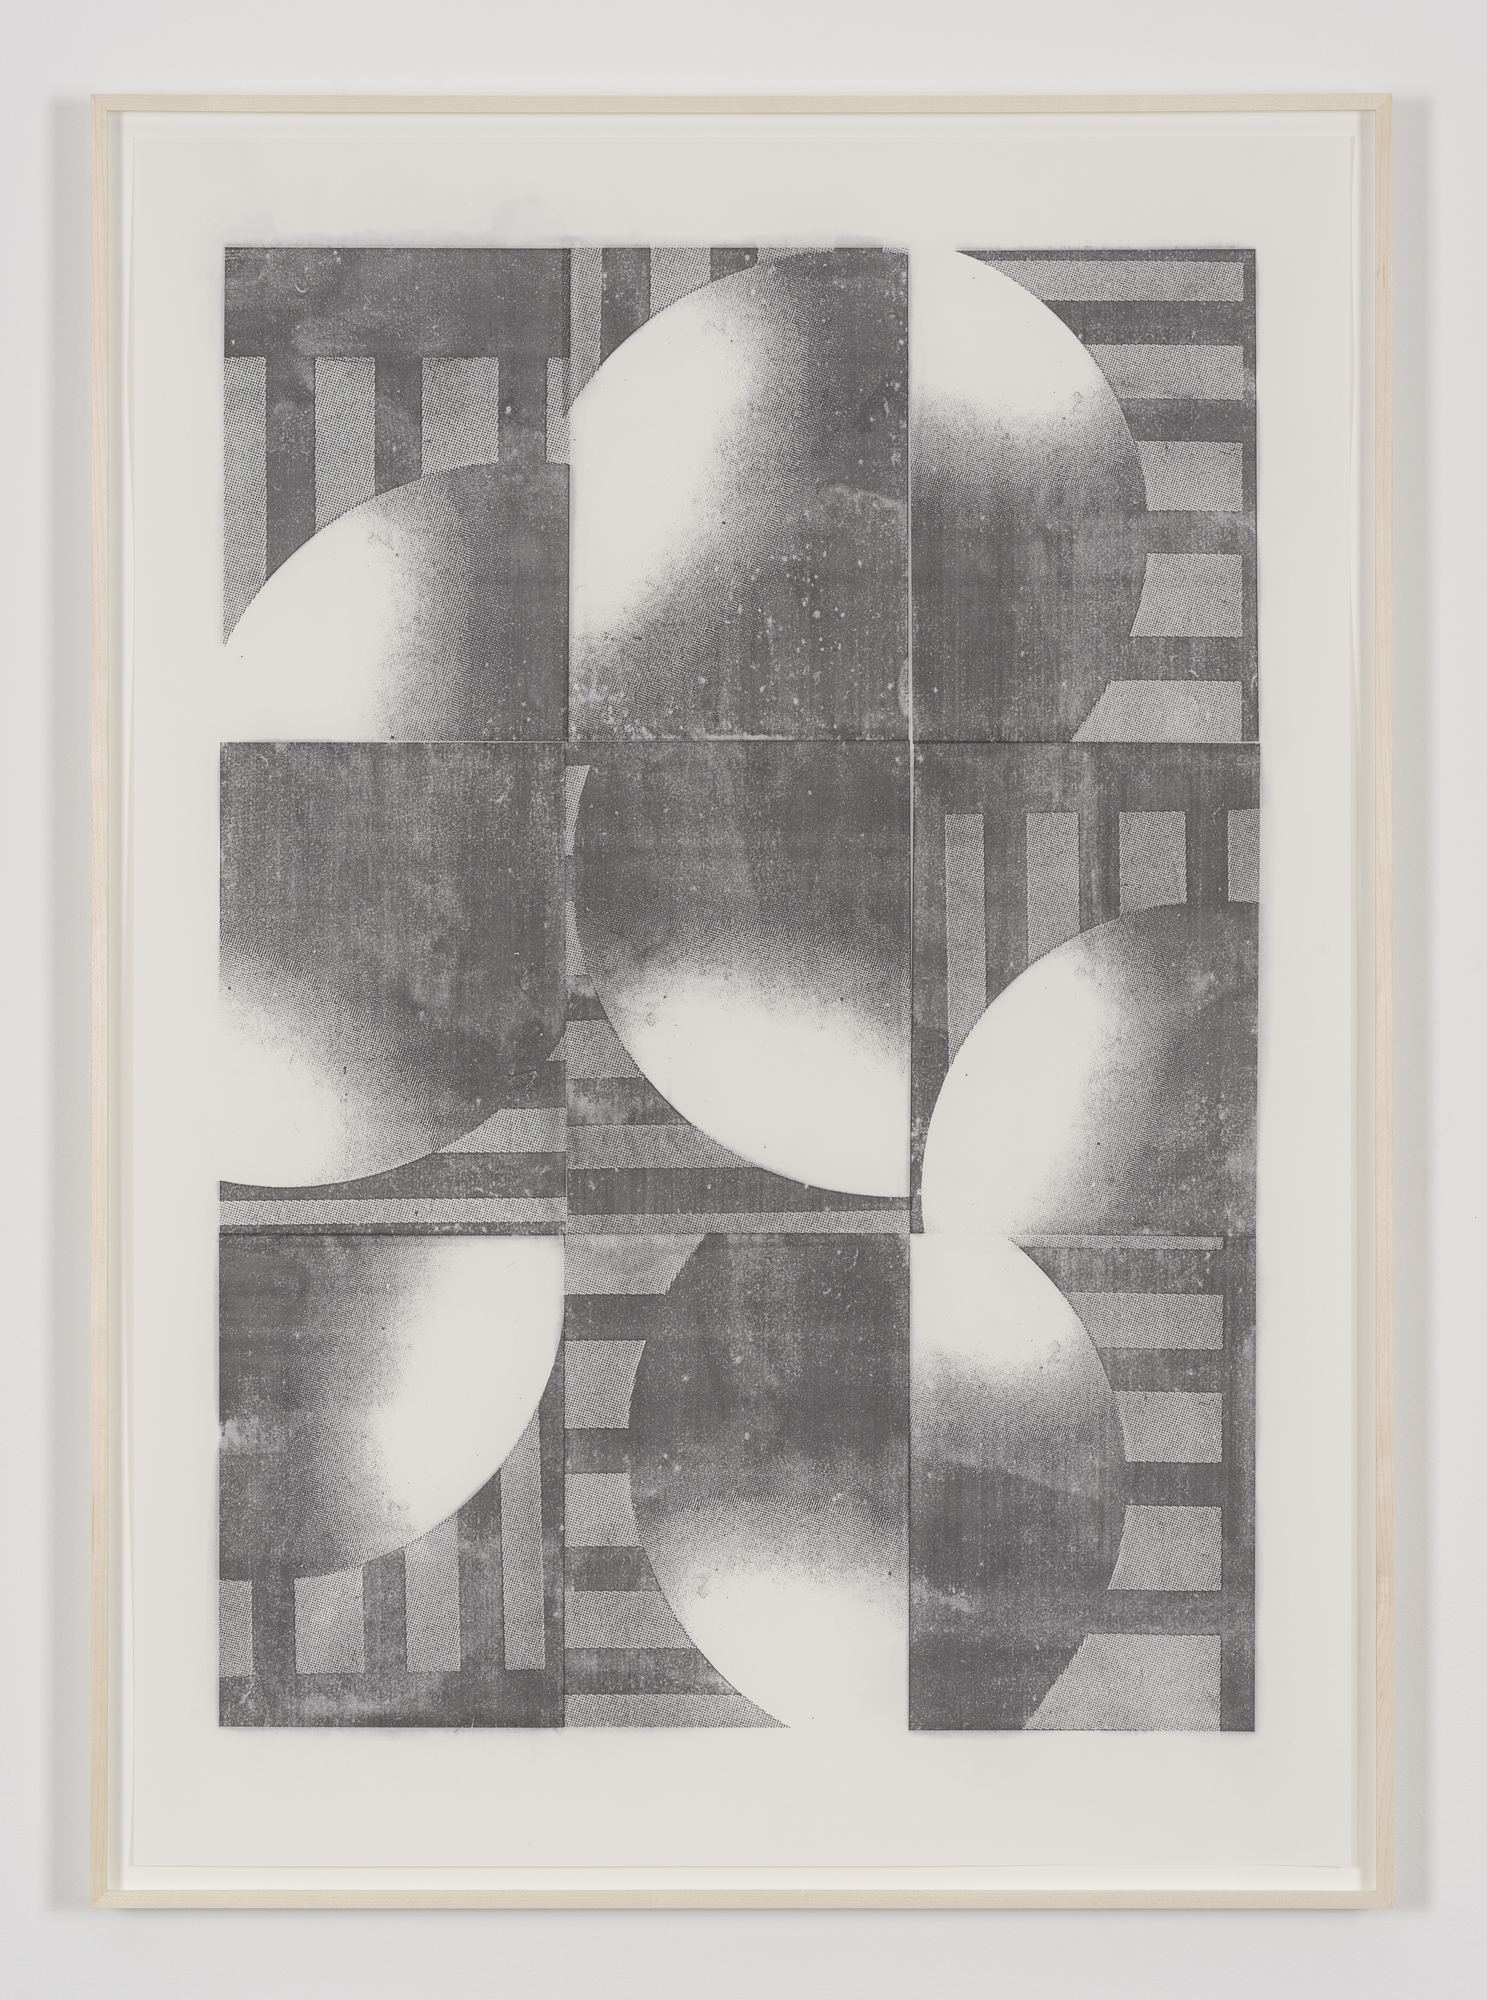 Untitled (Transfer No. 2), acetone transfer on paper, 100 x 70 cm, 2015